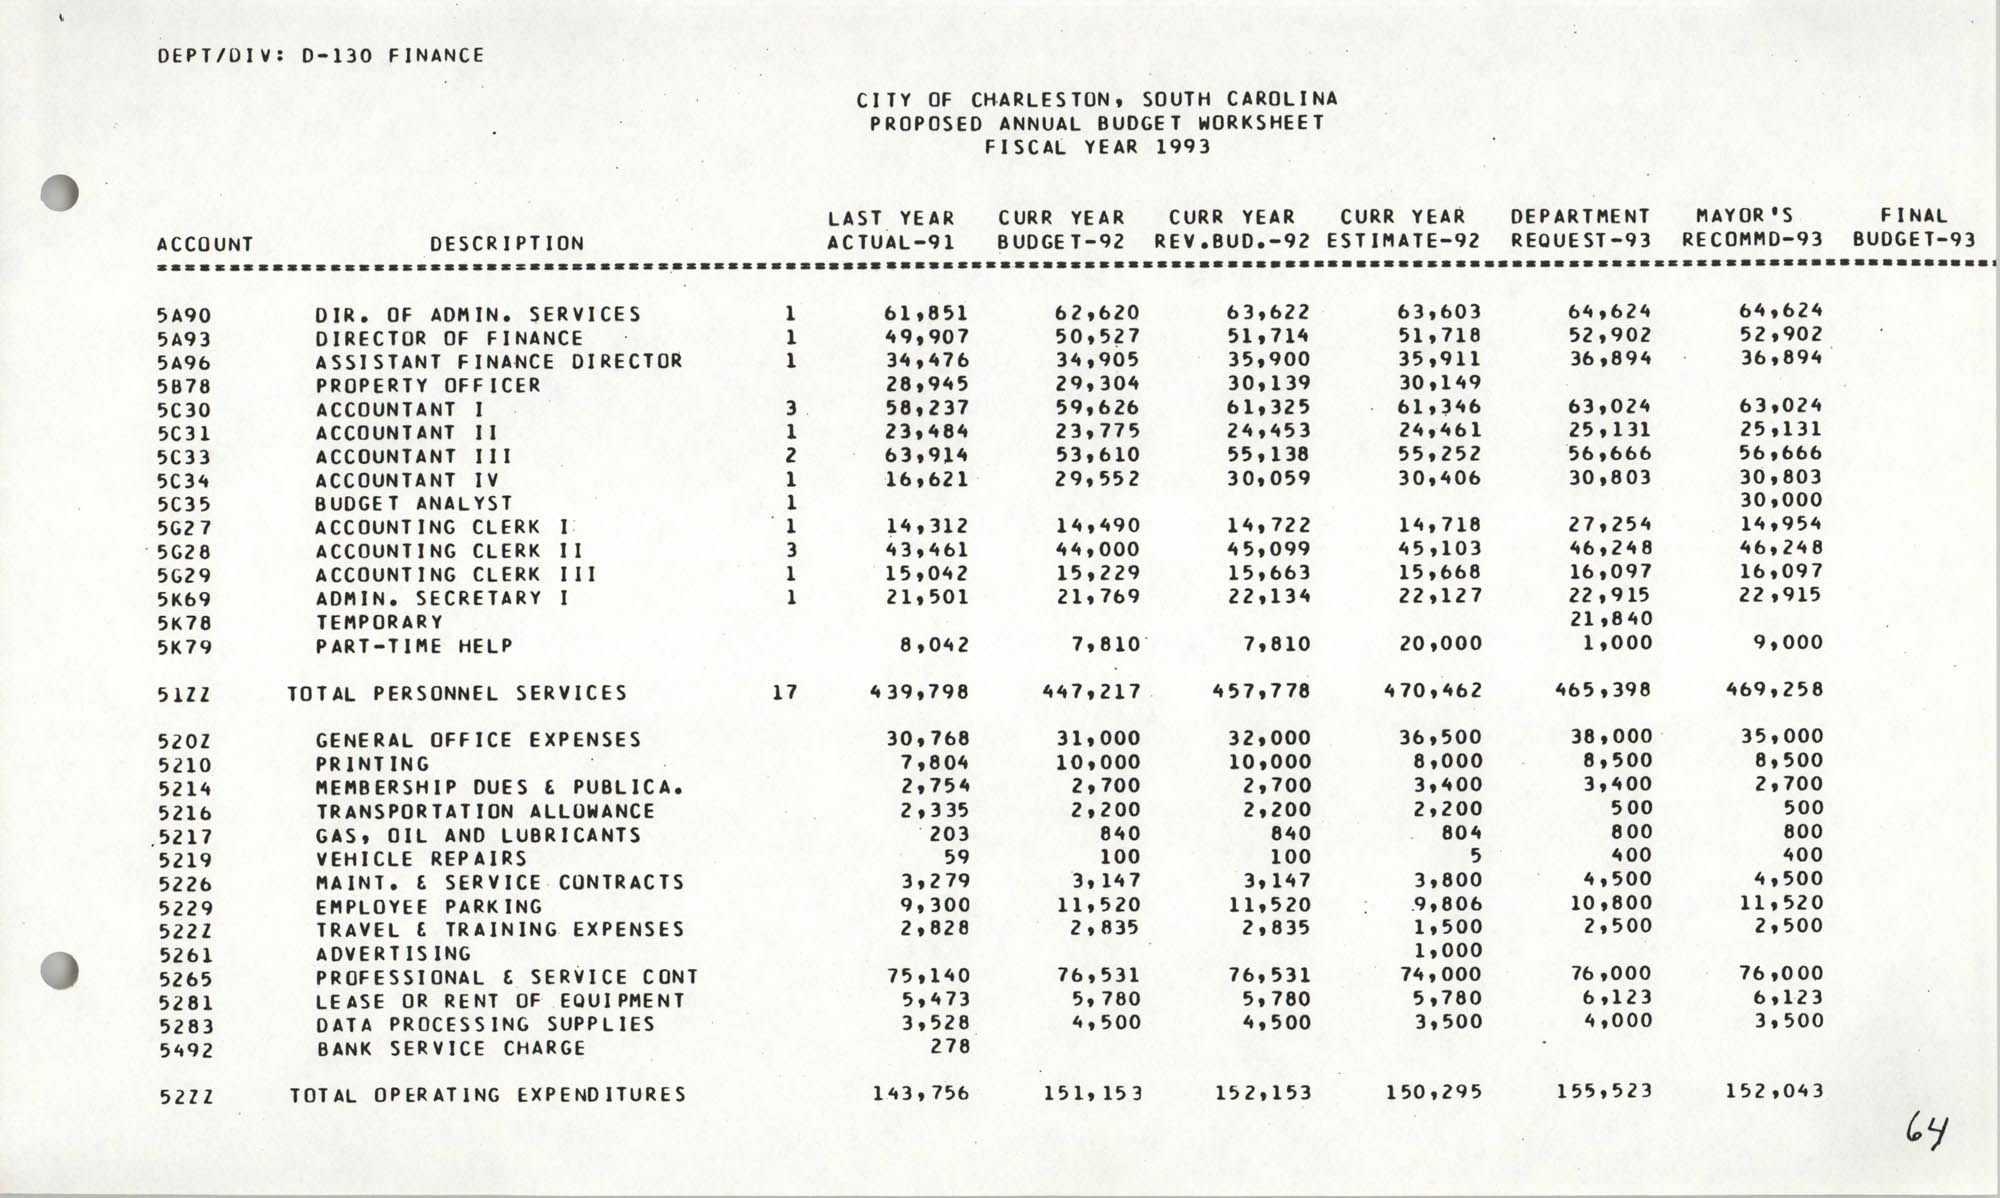 The City Council of Charleston, South Carolina, 1993 Budget, Page 64